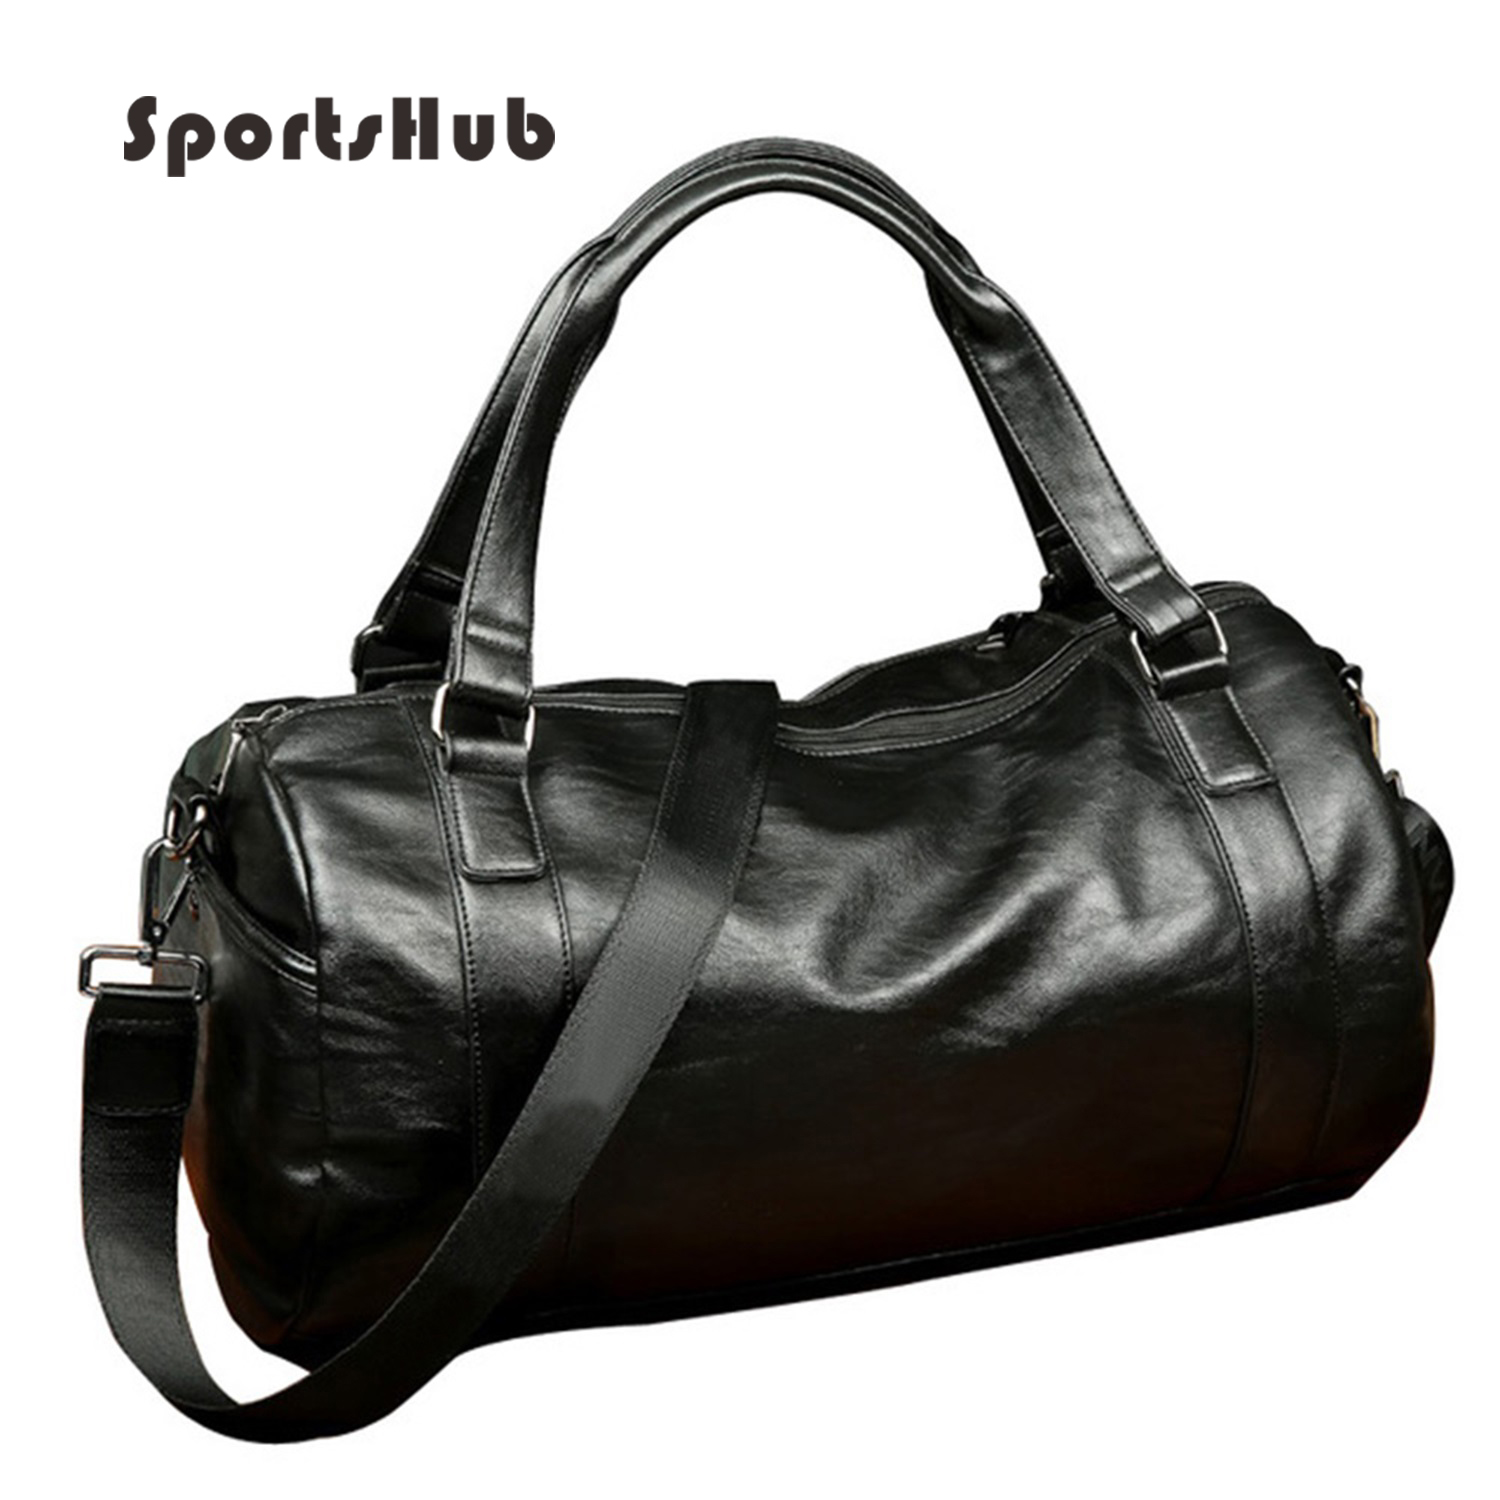 SPORTSHUB Top PU Leather Men's Sports Bags Gym Bags Classic Sports HandBag Fitness Travel Bags Workout Shoulder Bag SB0004